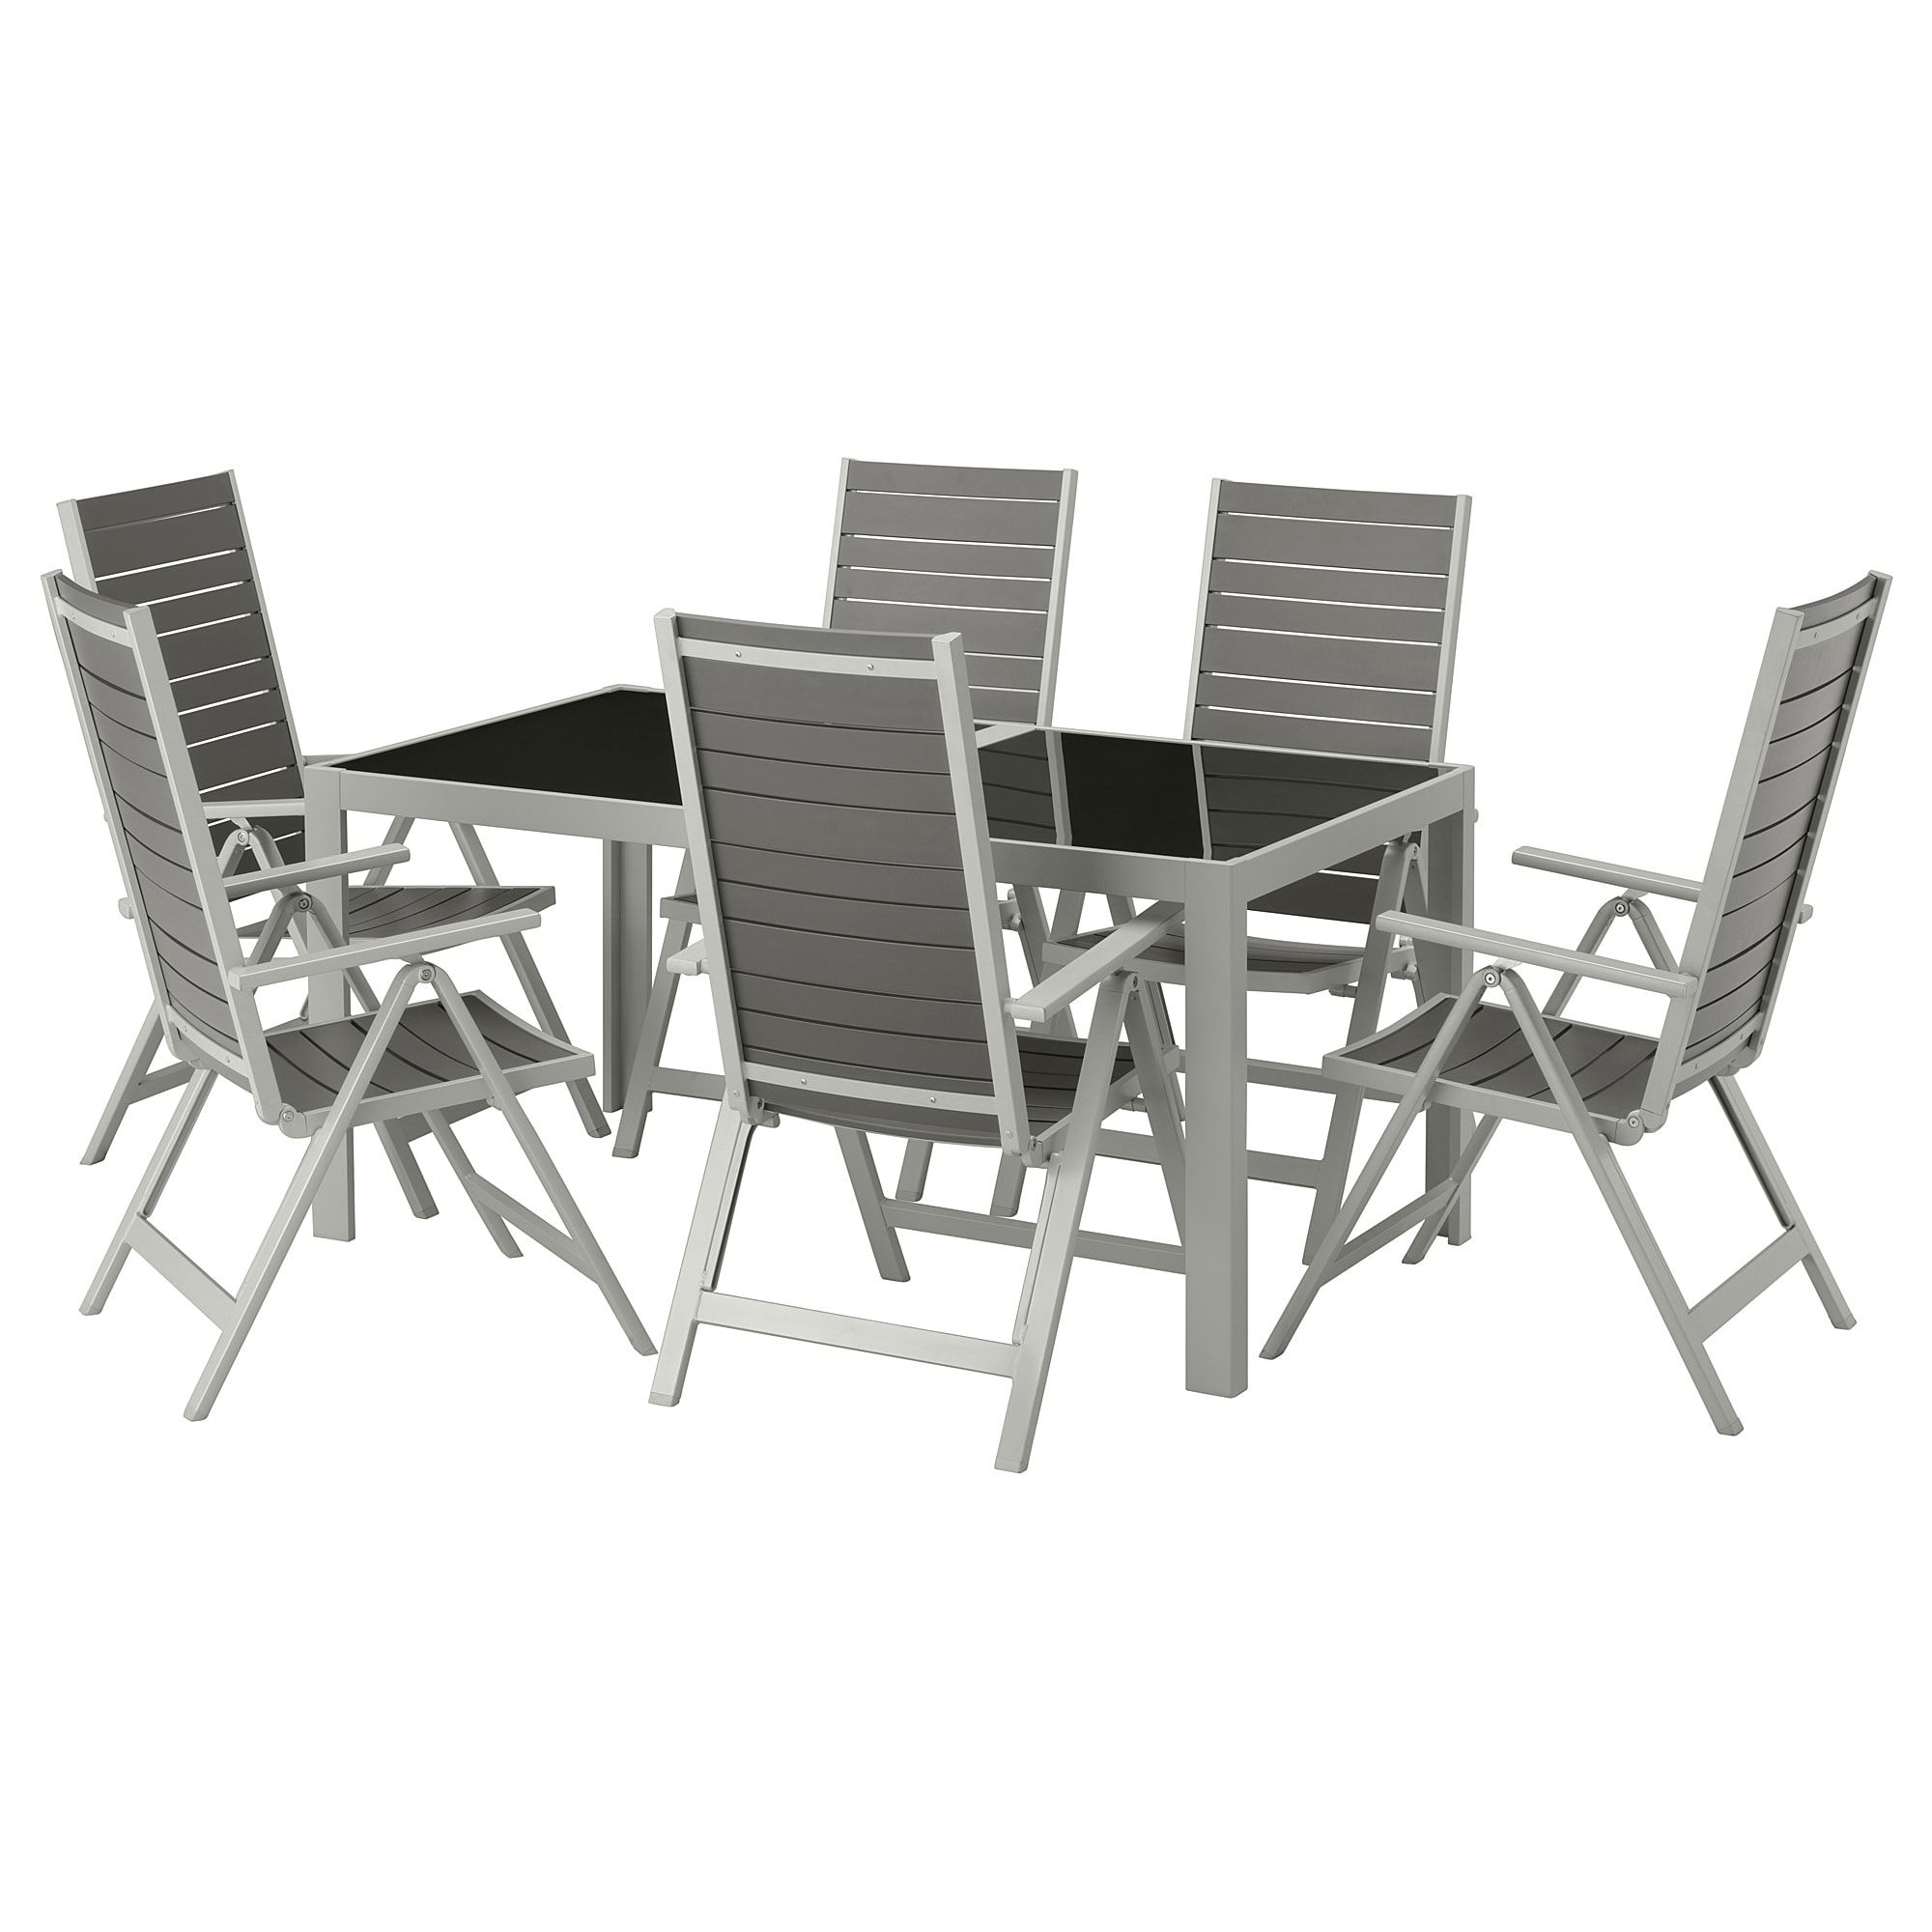 Phenomenal Ikea Sjalland Glass Gray Light Gray Table 6 Reclining Unemploymentrelief Wooden Chair Designs For Living Room Unemploymentrelieforg